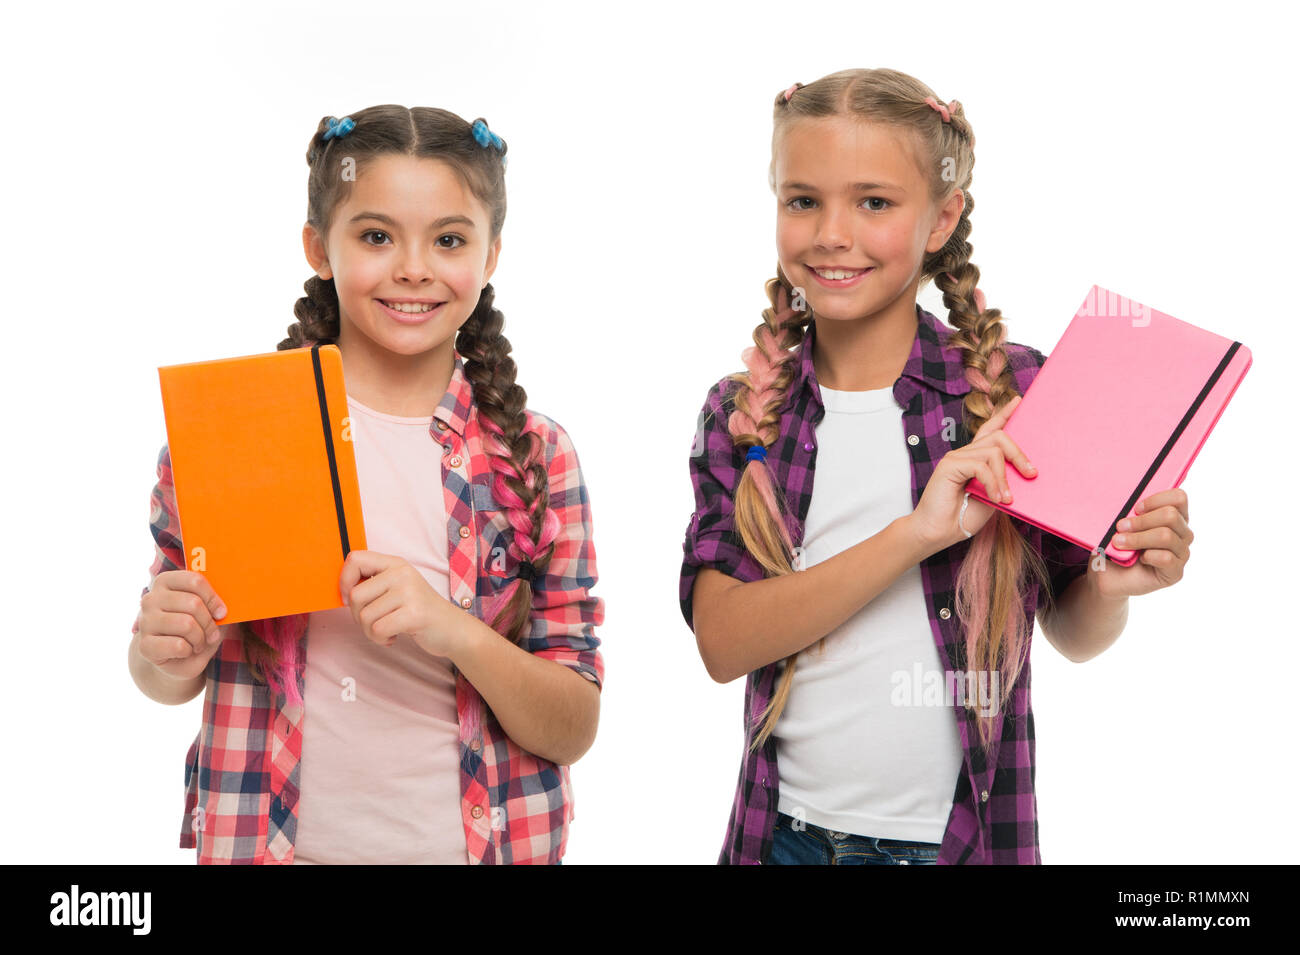 Children cute girls hold notepads or diaries isolated on white background. Note secrets down in your cute girly diary journal. Diary writing for children. Childhood memories. Diary for girls concept. - Stock Image